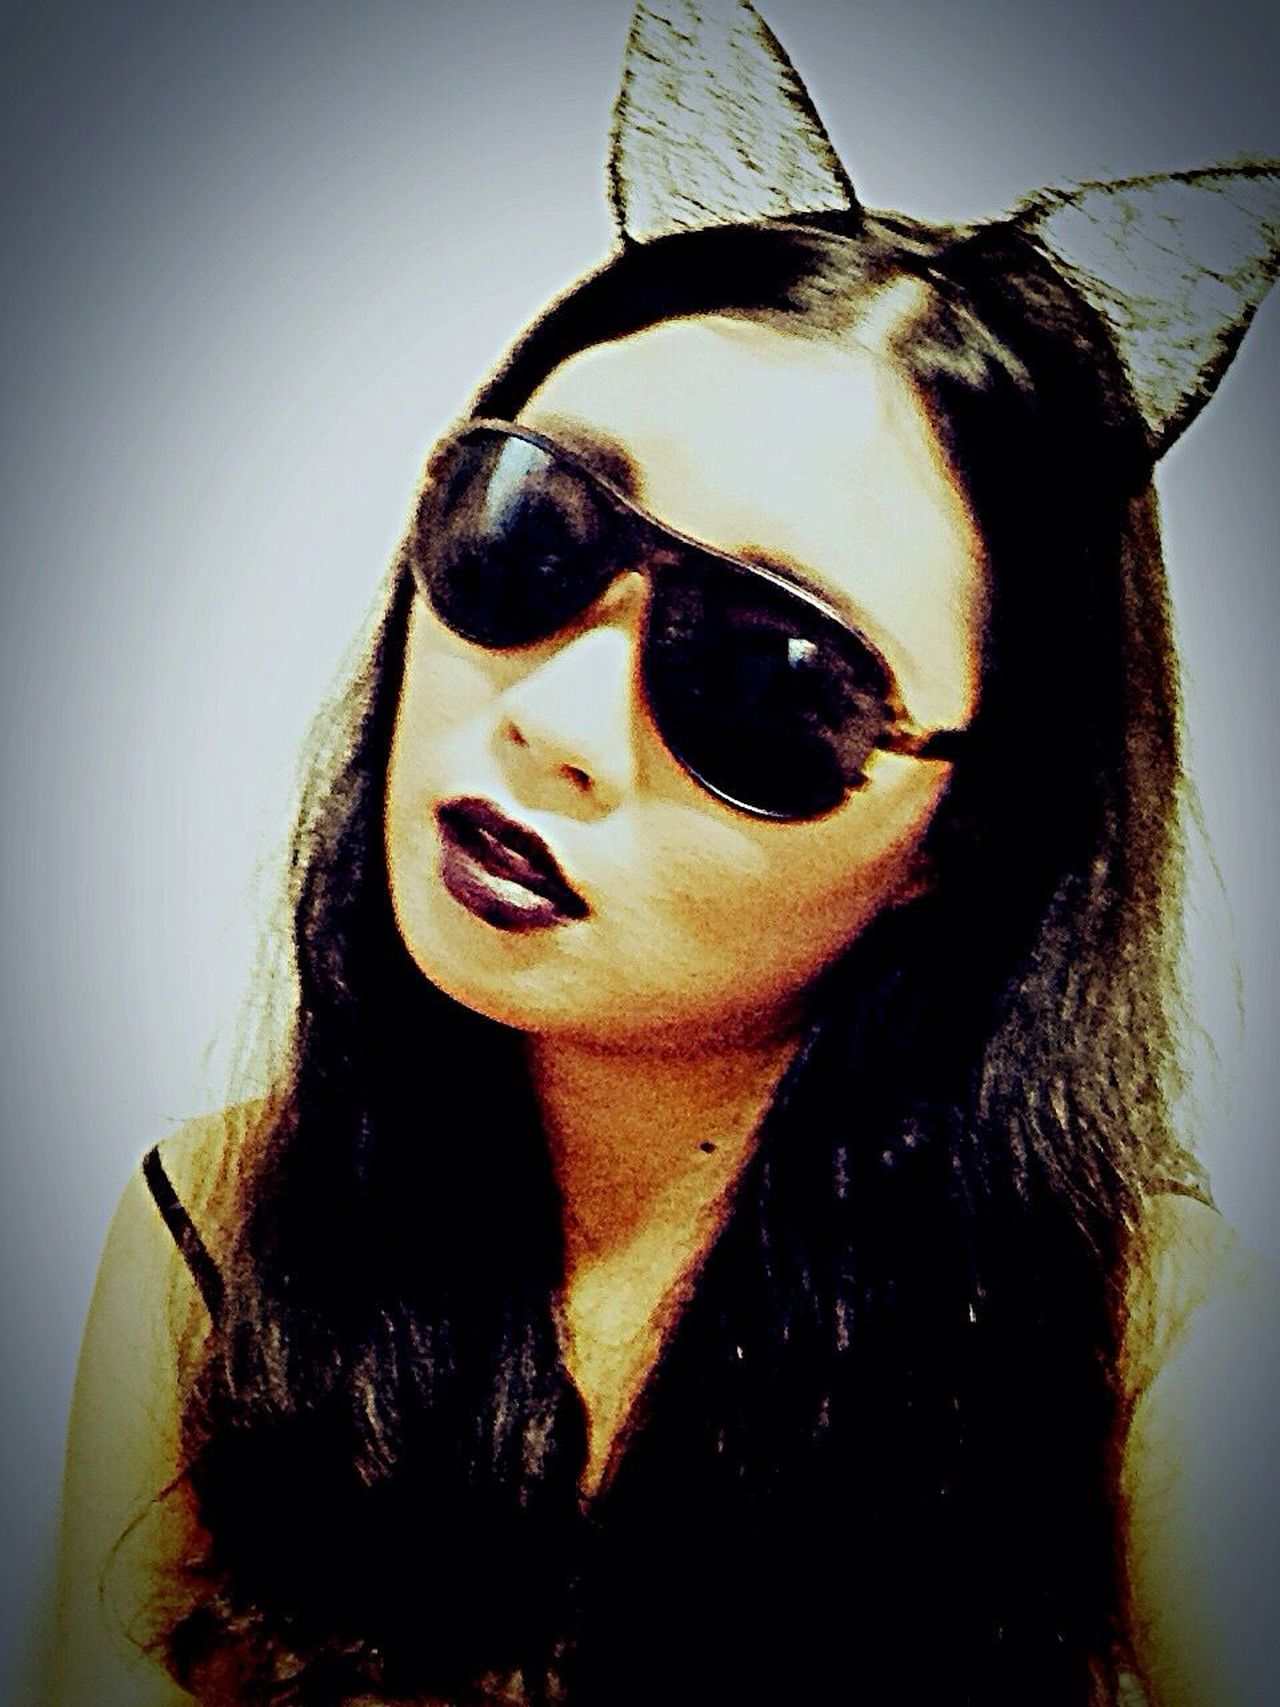 Paleface Cat Girl Makeup Sunglasses Lazy Young Adult Tokyo Days